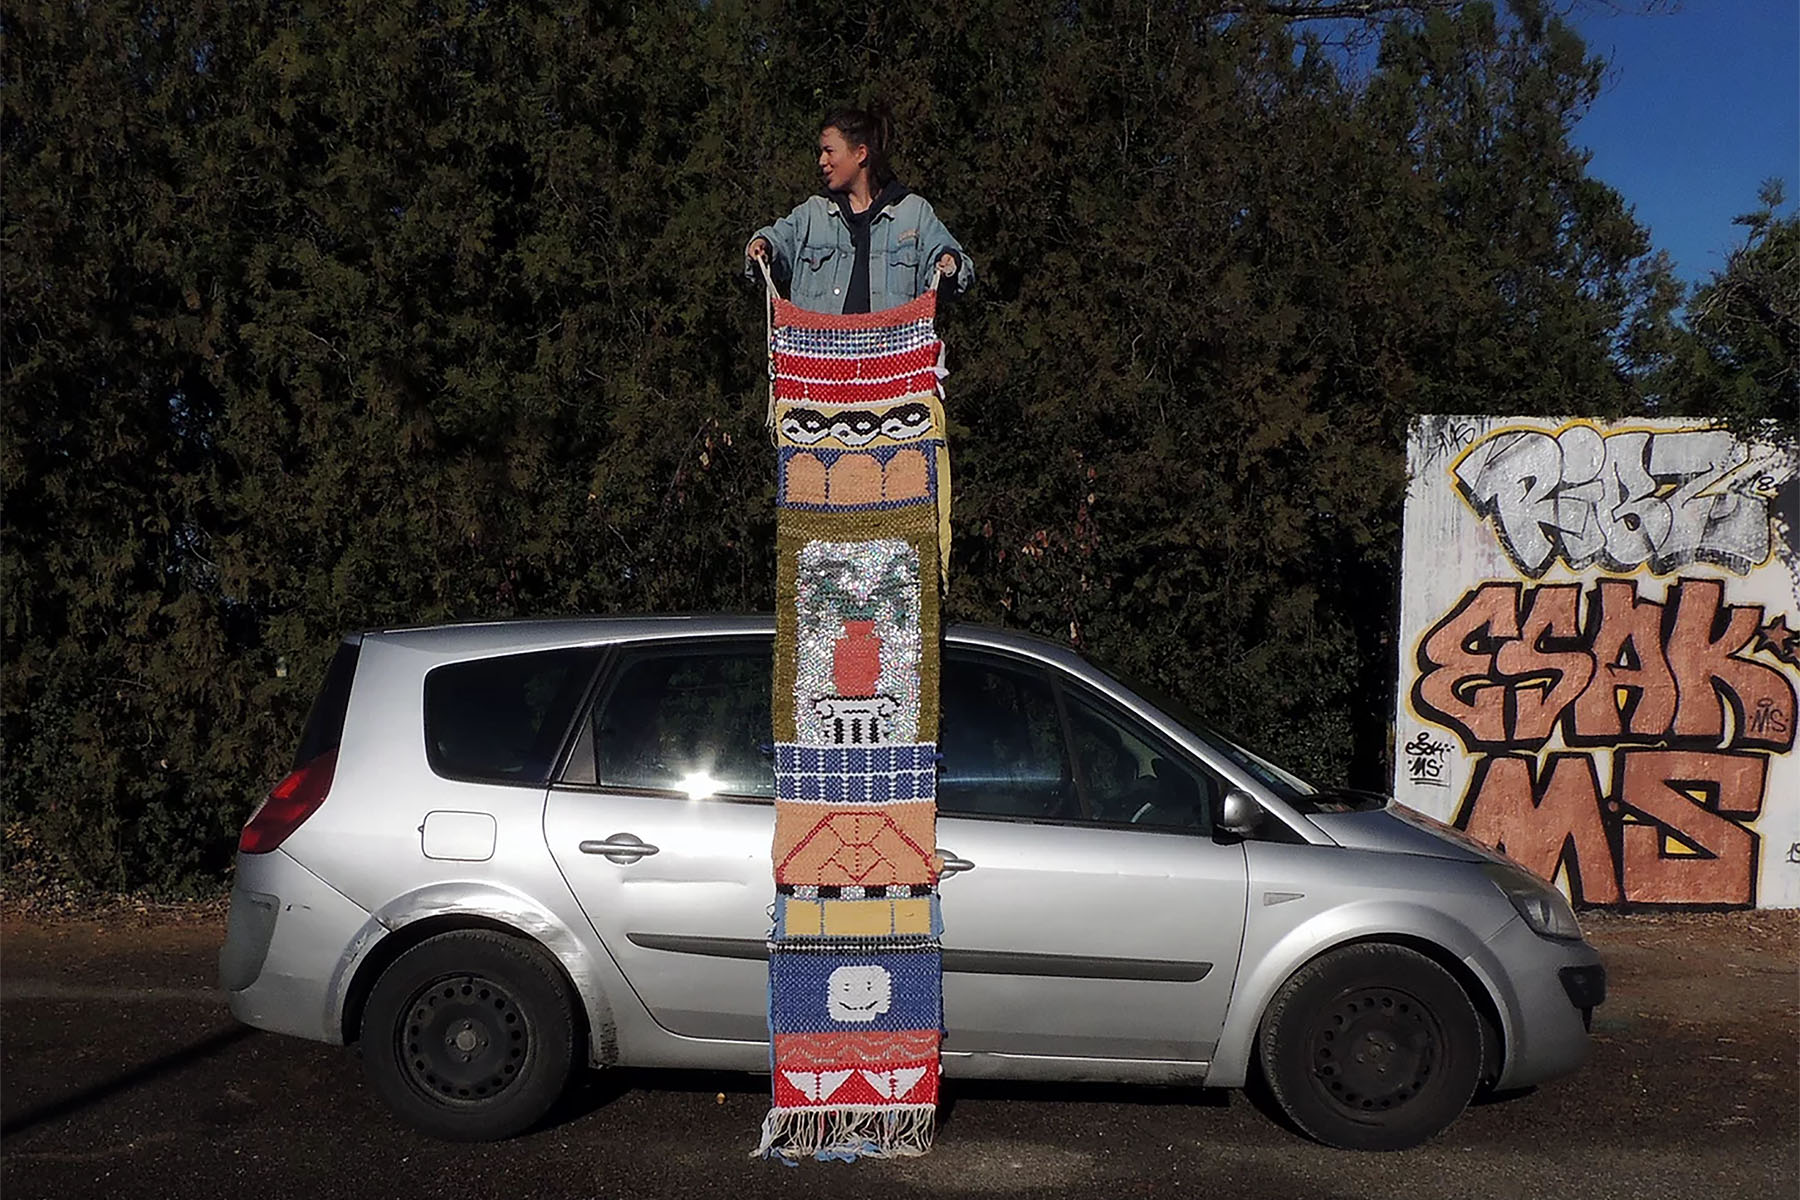 Delphine Dénéréaz standing on topof a car with her artwork